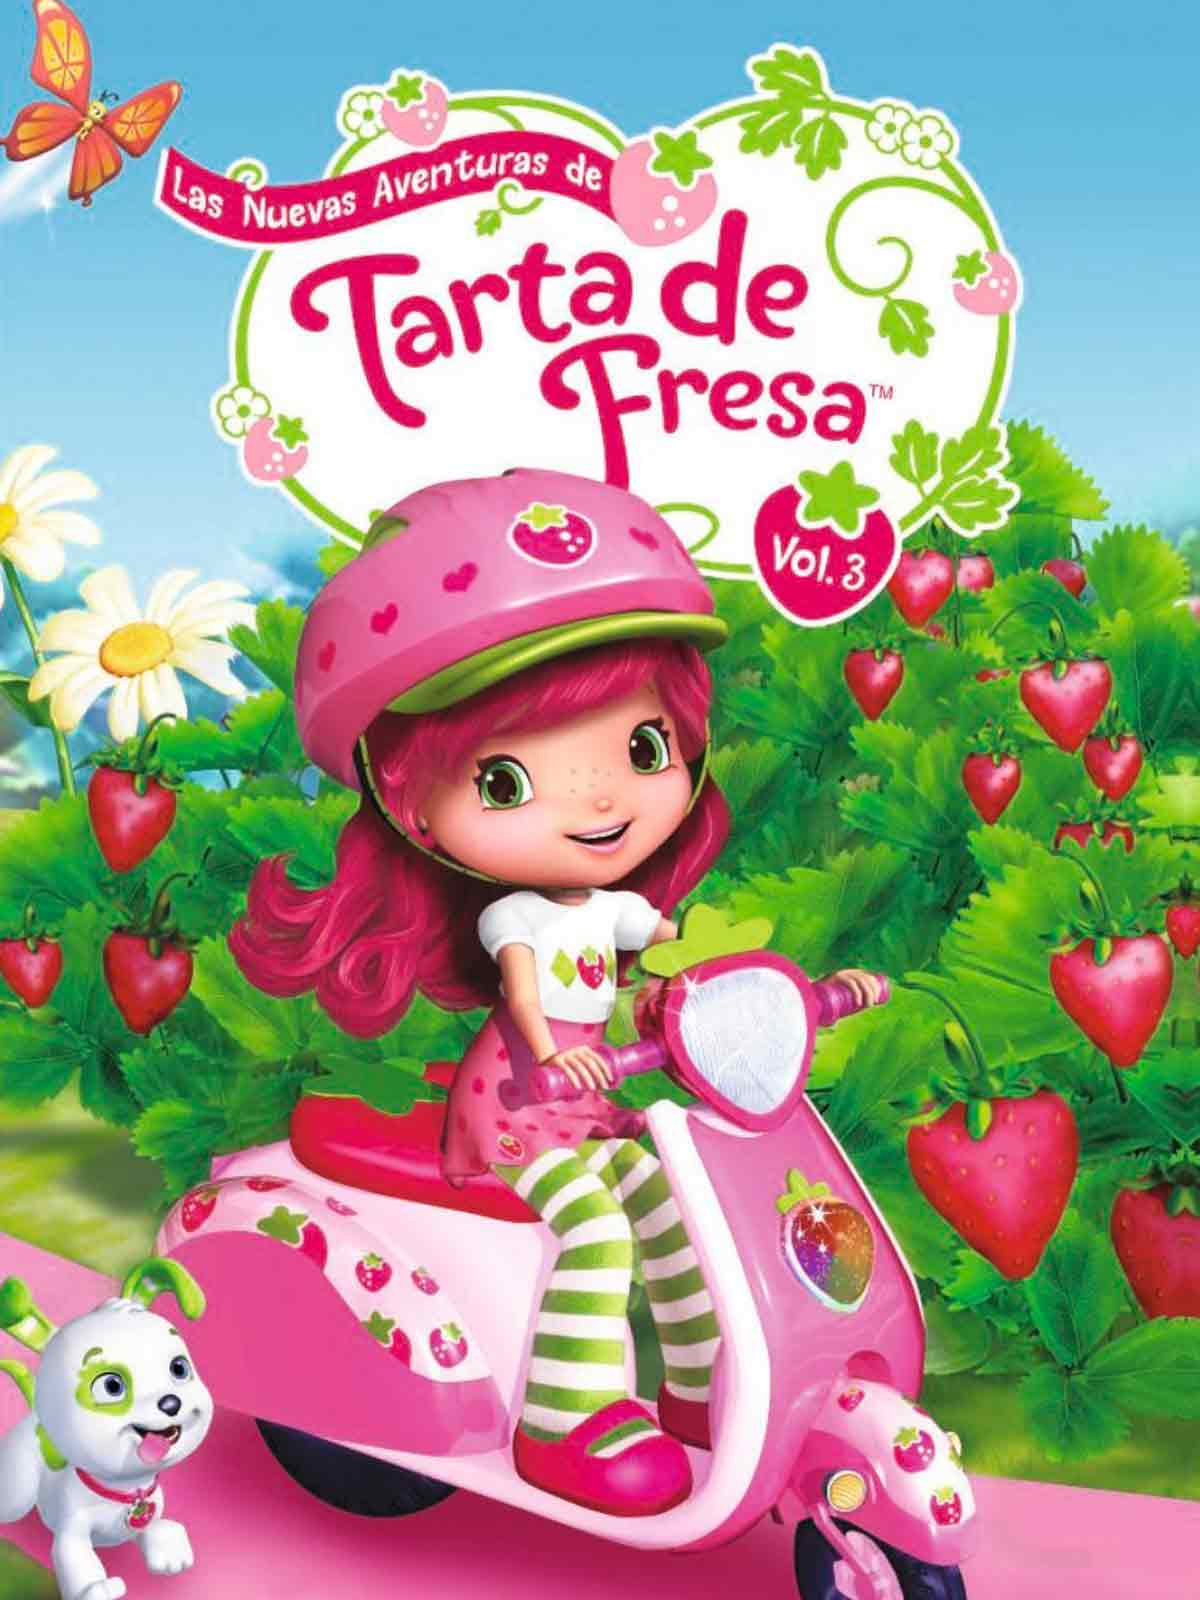 Strawberry Shortcake Girl Wallpaper Las Nuevas Aventuras De Tarta De Fresa Serie 2010